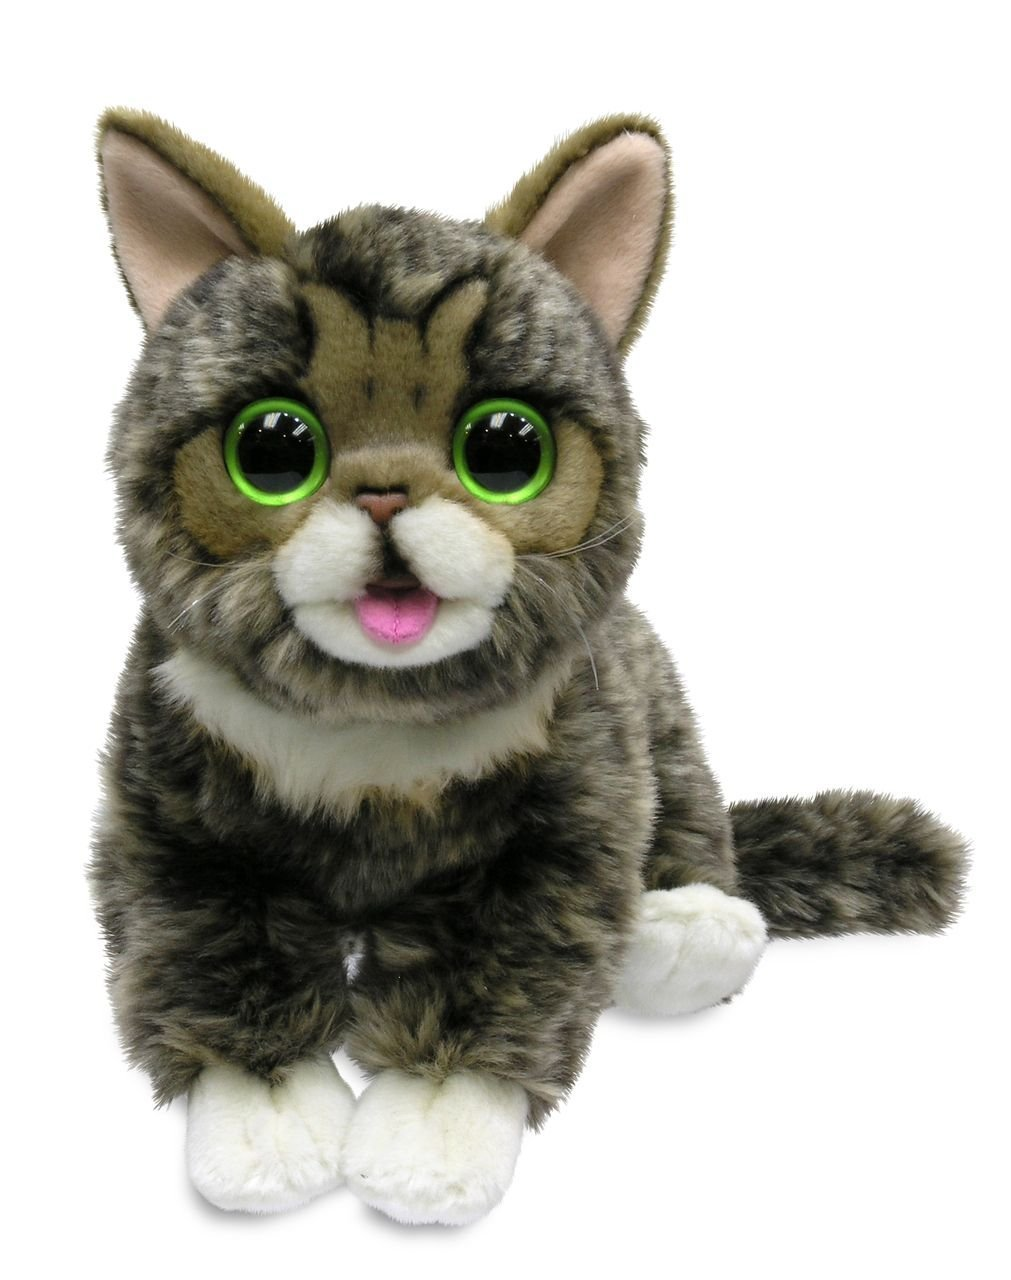 Cuddle Barn Lil' Bub Adorable Kitten Cat Plush Toy - Cb8240